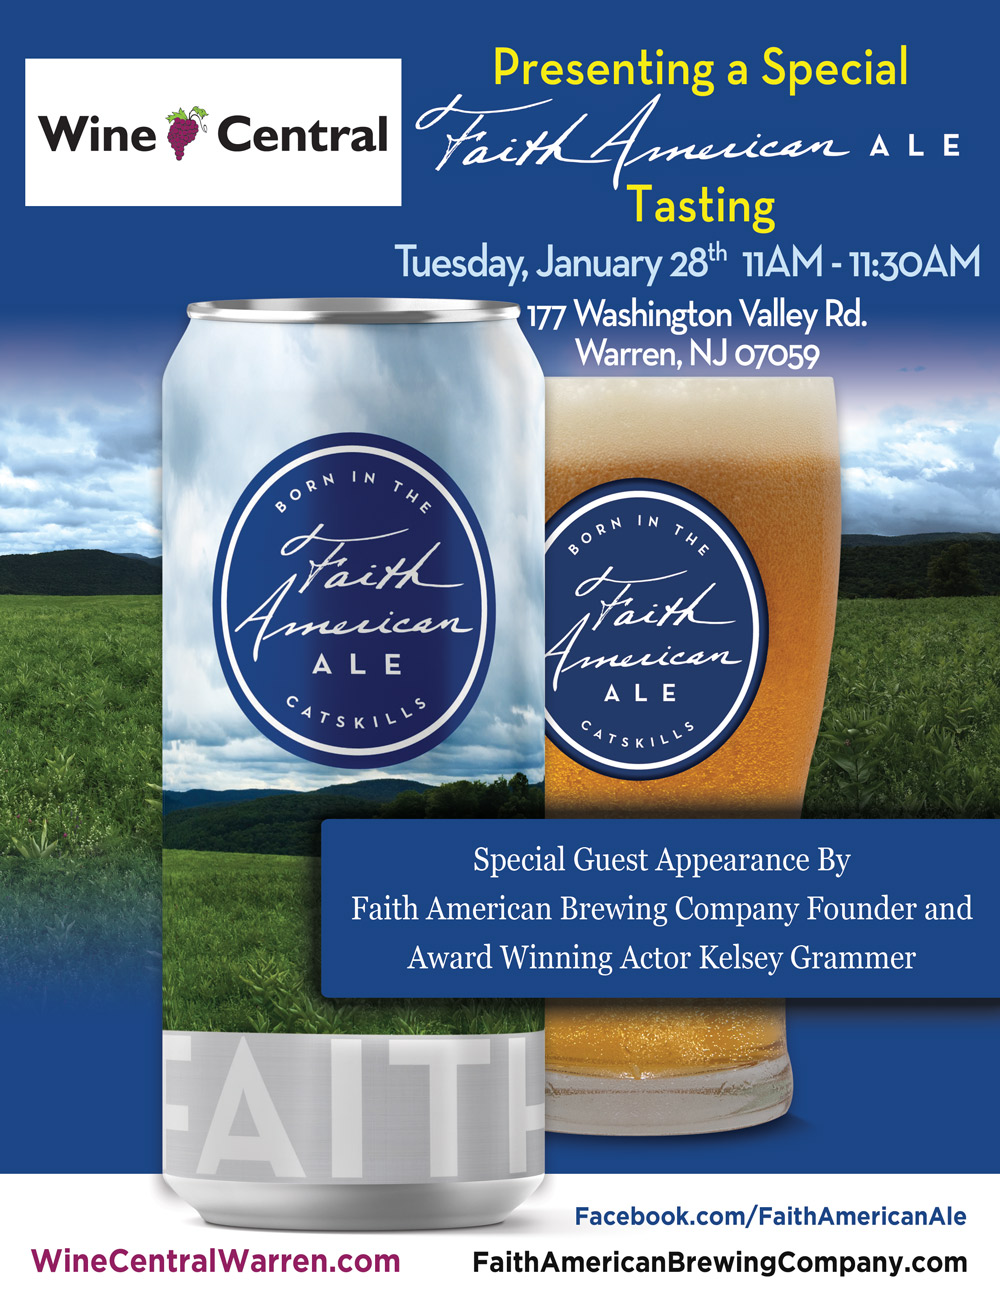 Faith American Ale Tasting Event at Wine Central in Warren NJ